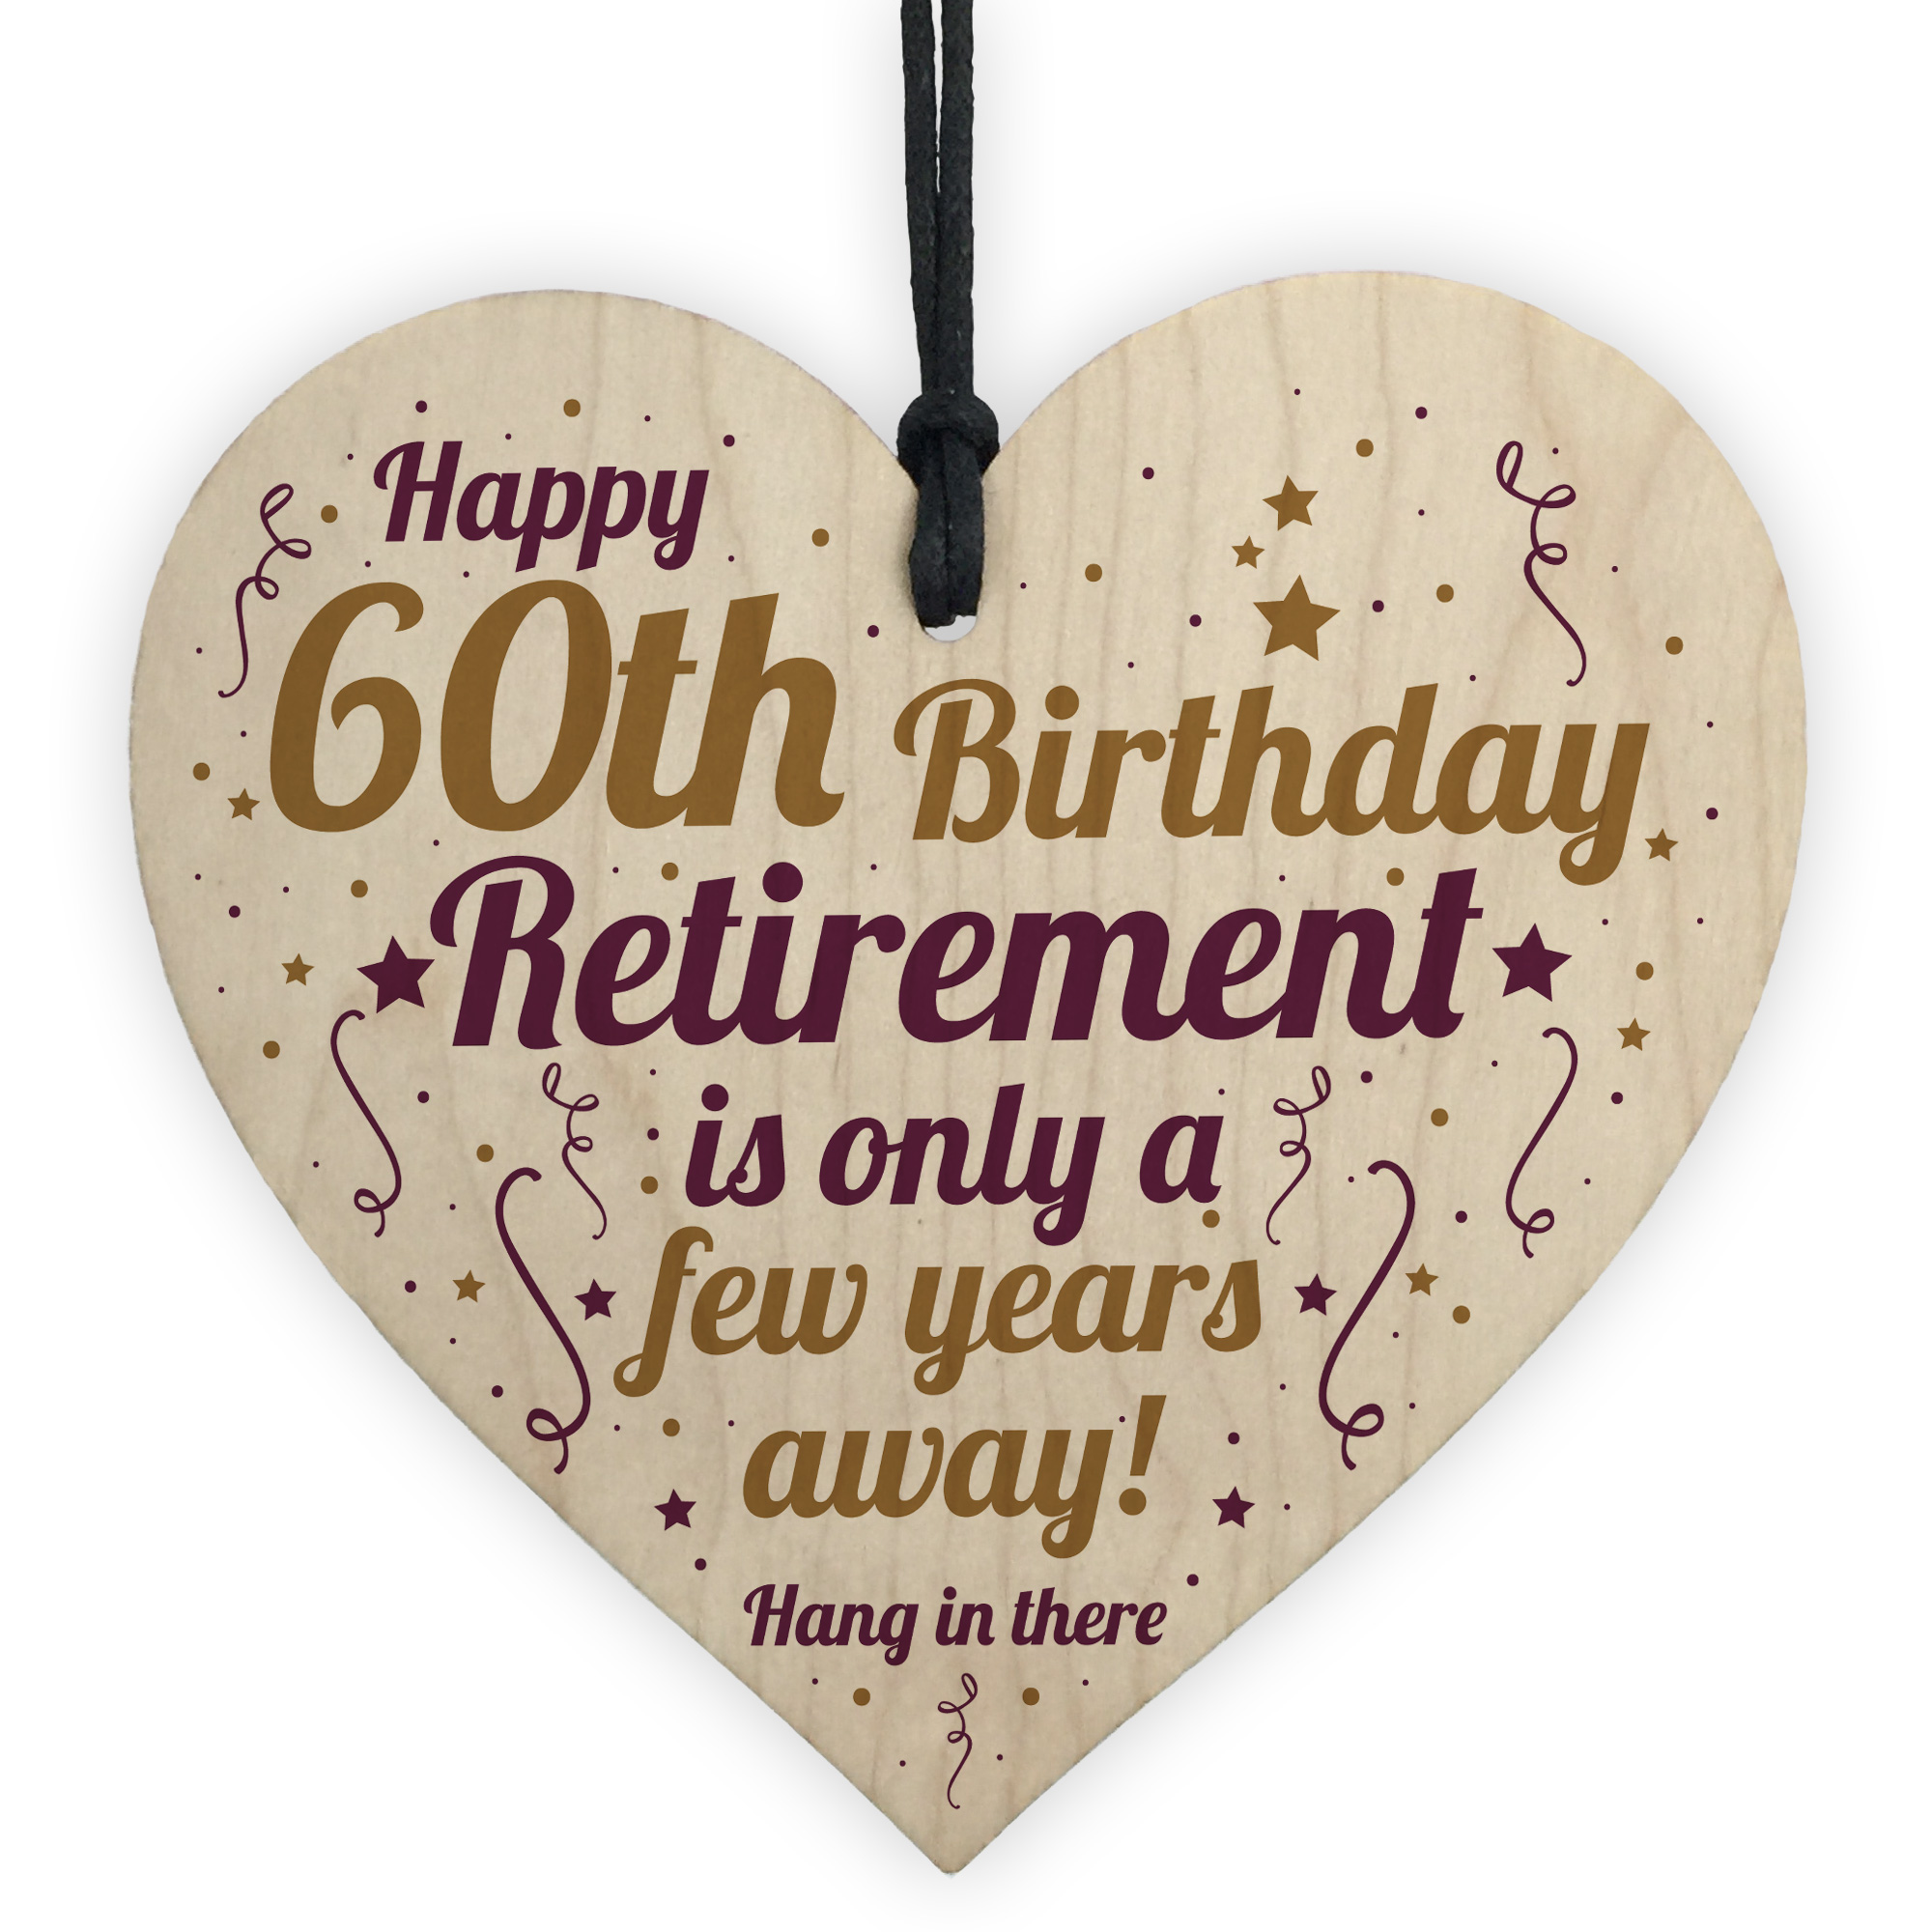 Details About Funny 60th Birthday Card Wooden Heart Gifts For Women Men Keepsake